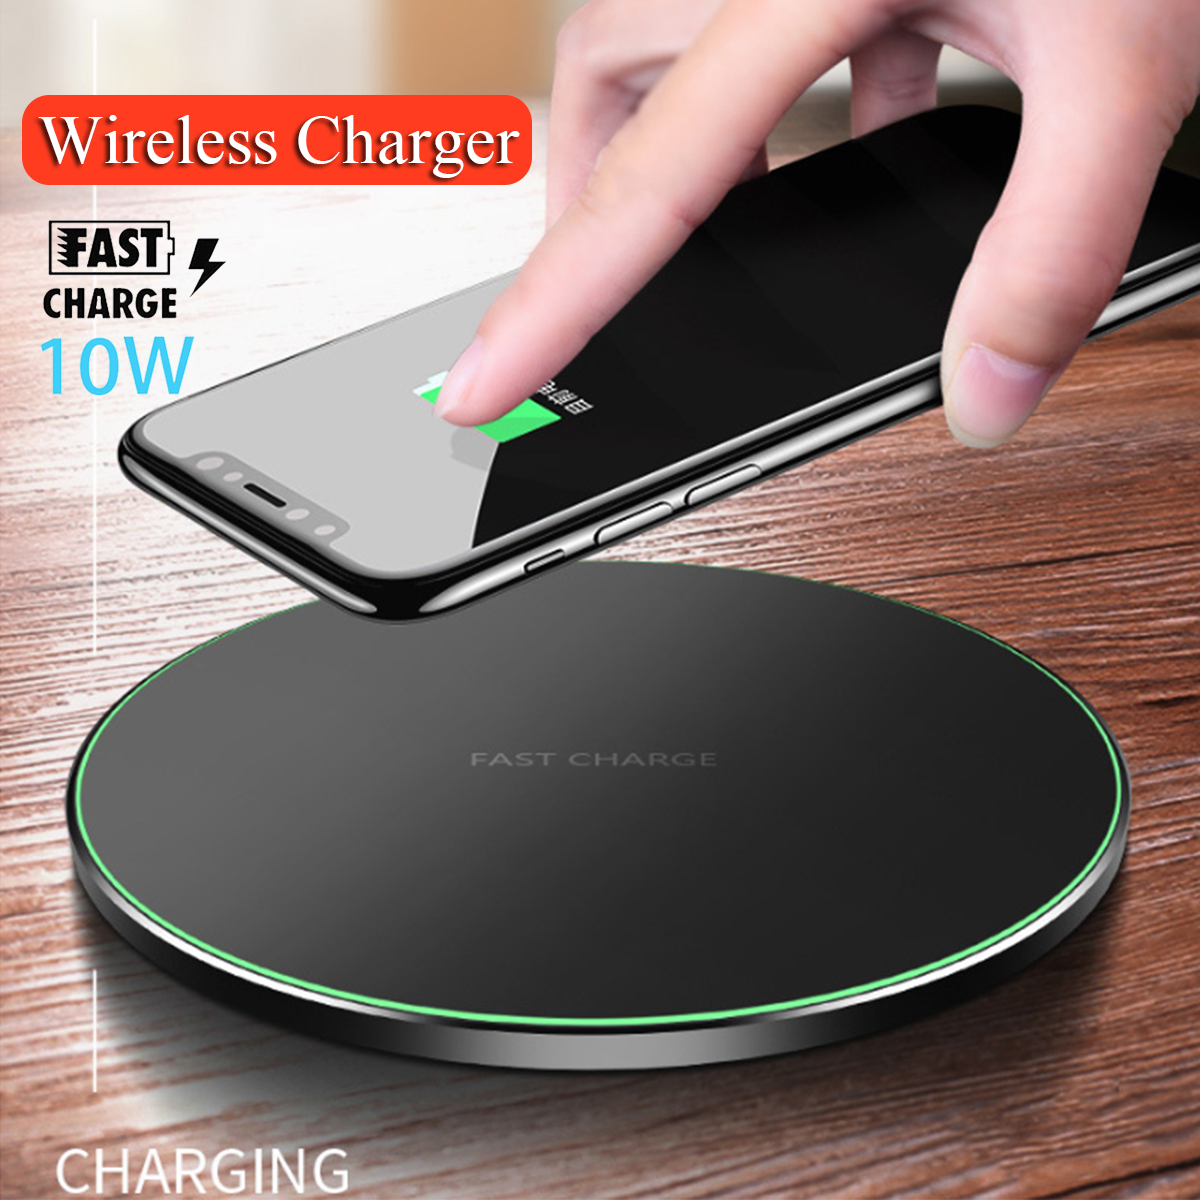 new product 26948 a3e61 Details about Qi Wireless Fast Charger Charging Pad Metal Mat For iPhone XS  Max Samsung S10+